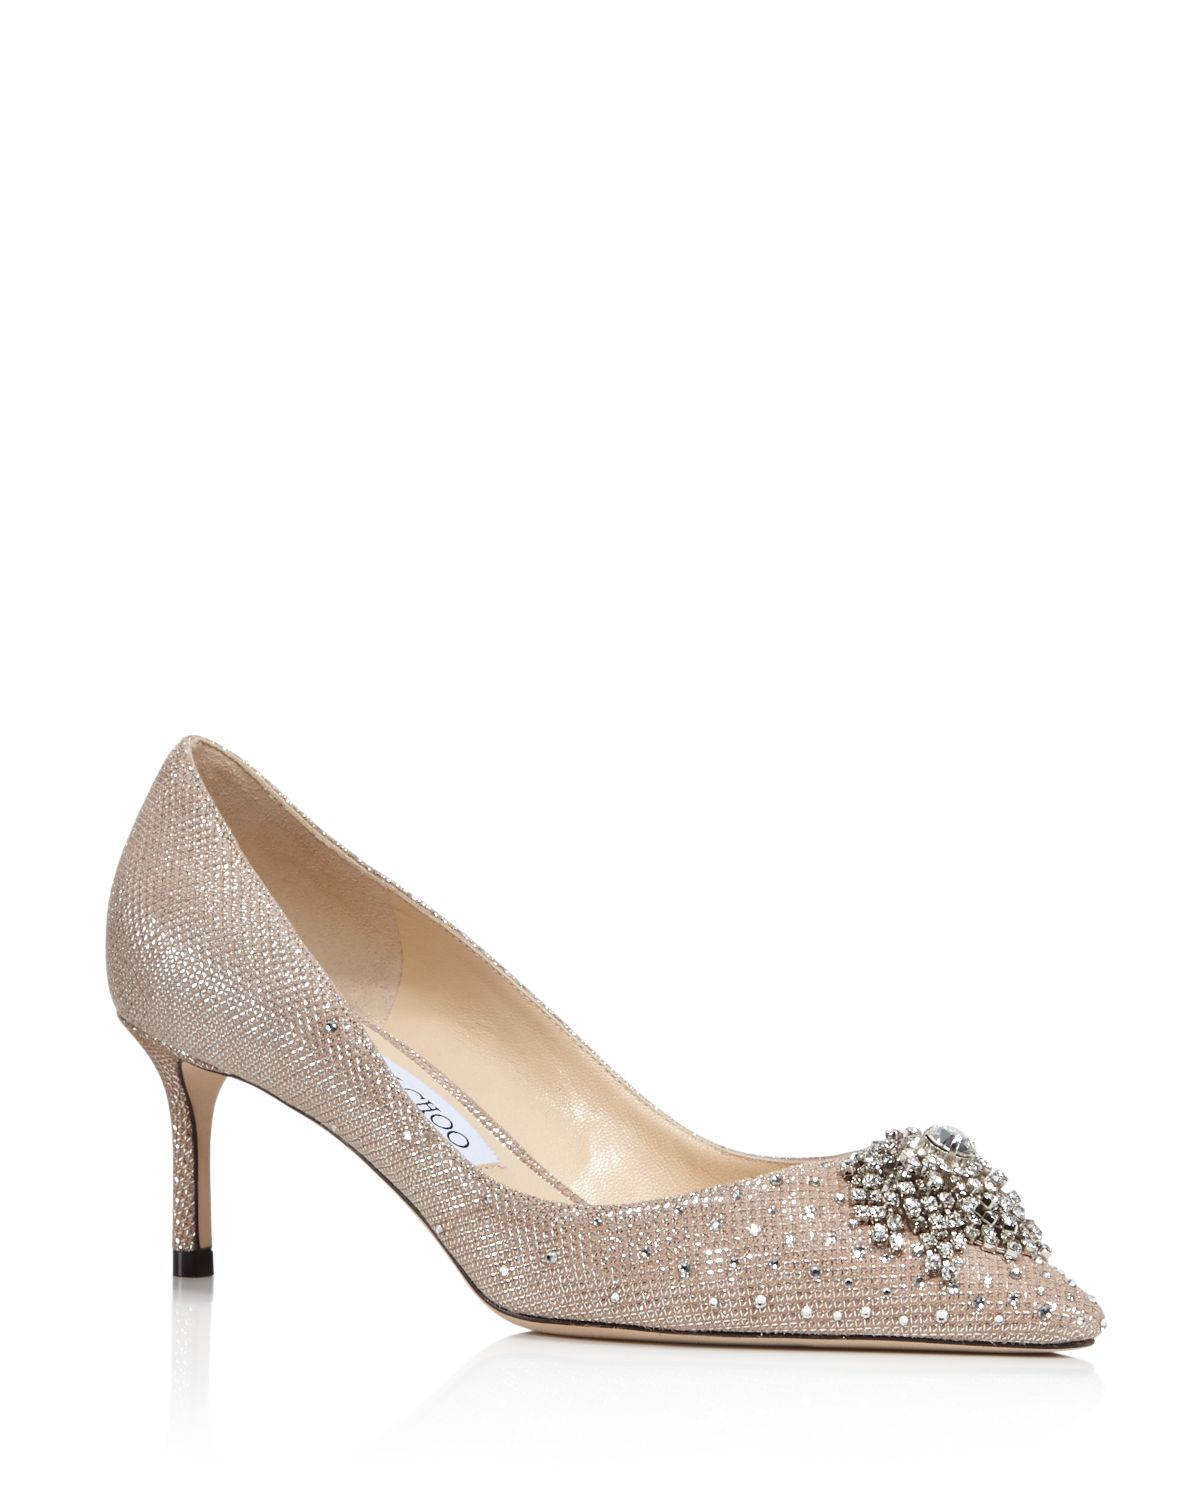 Jimmy choo Women's Joan 60 Glitter Mesh & Leather Pointed Toe Mid Heel Pumps